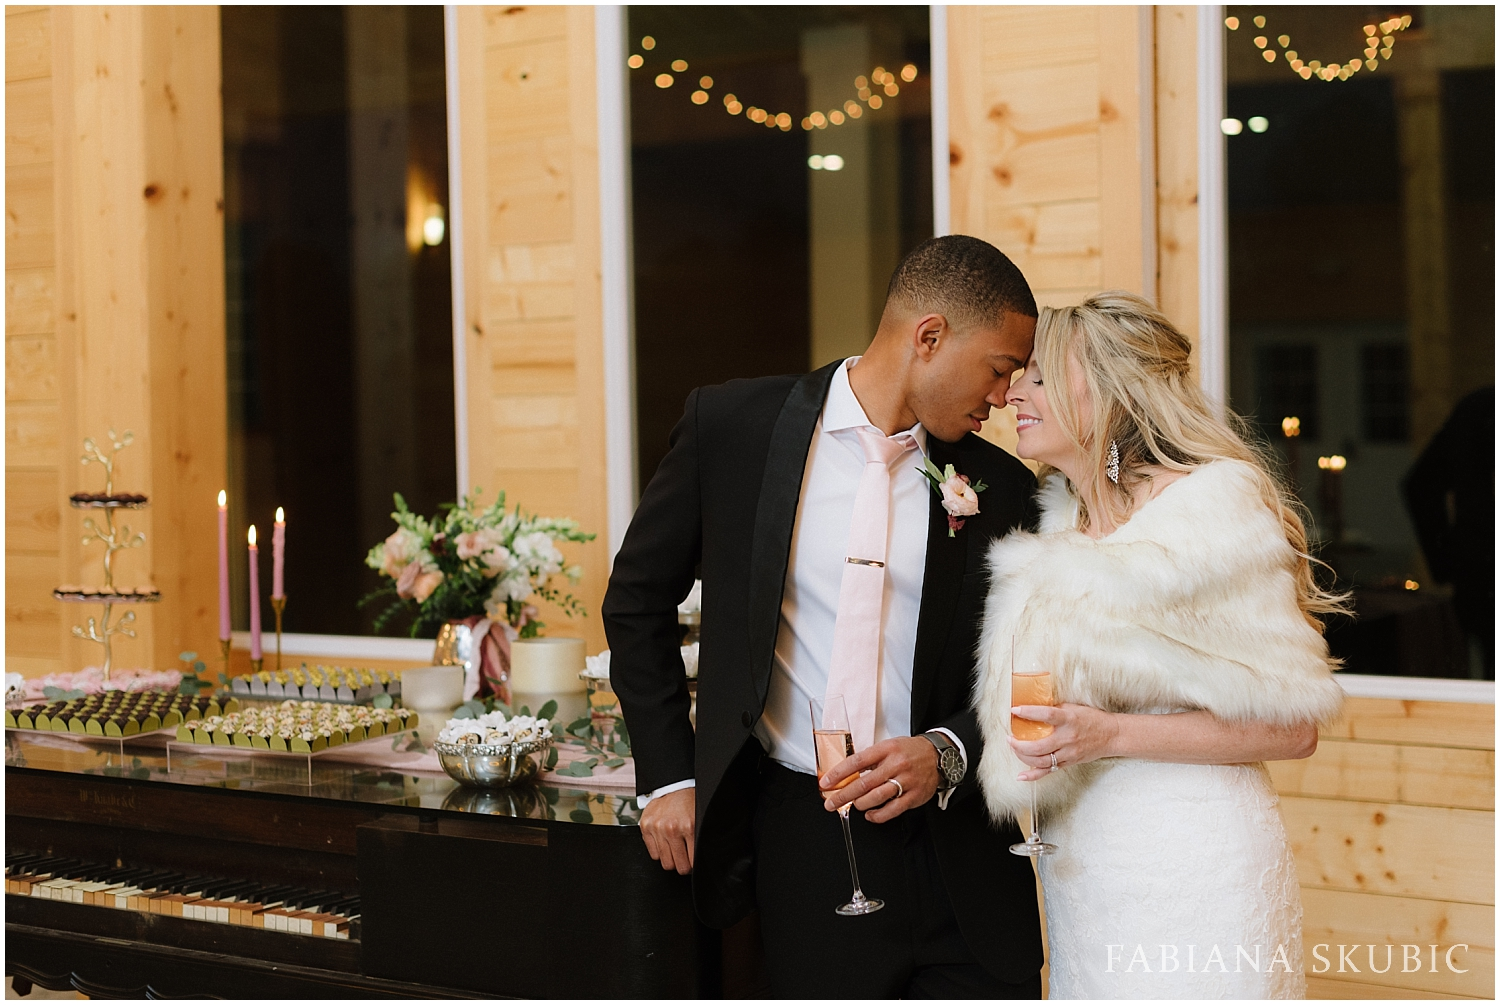 walnut-hill-wedding-raleigh-photographer-FS_0042.jpg